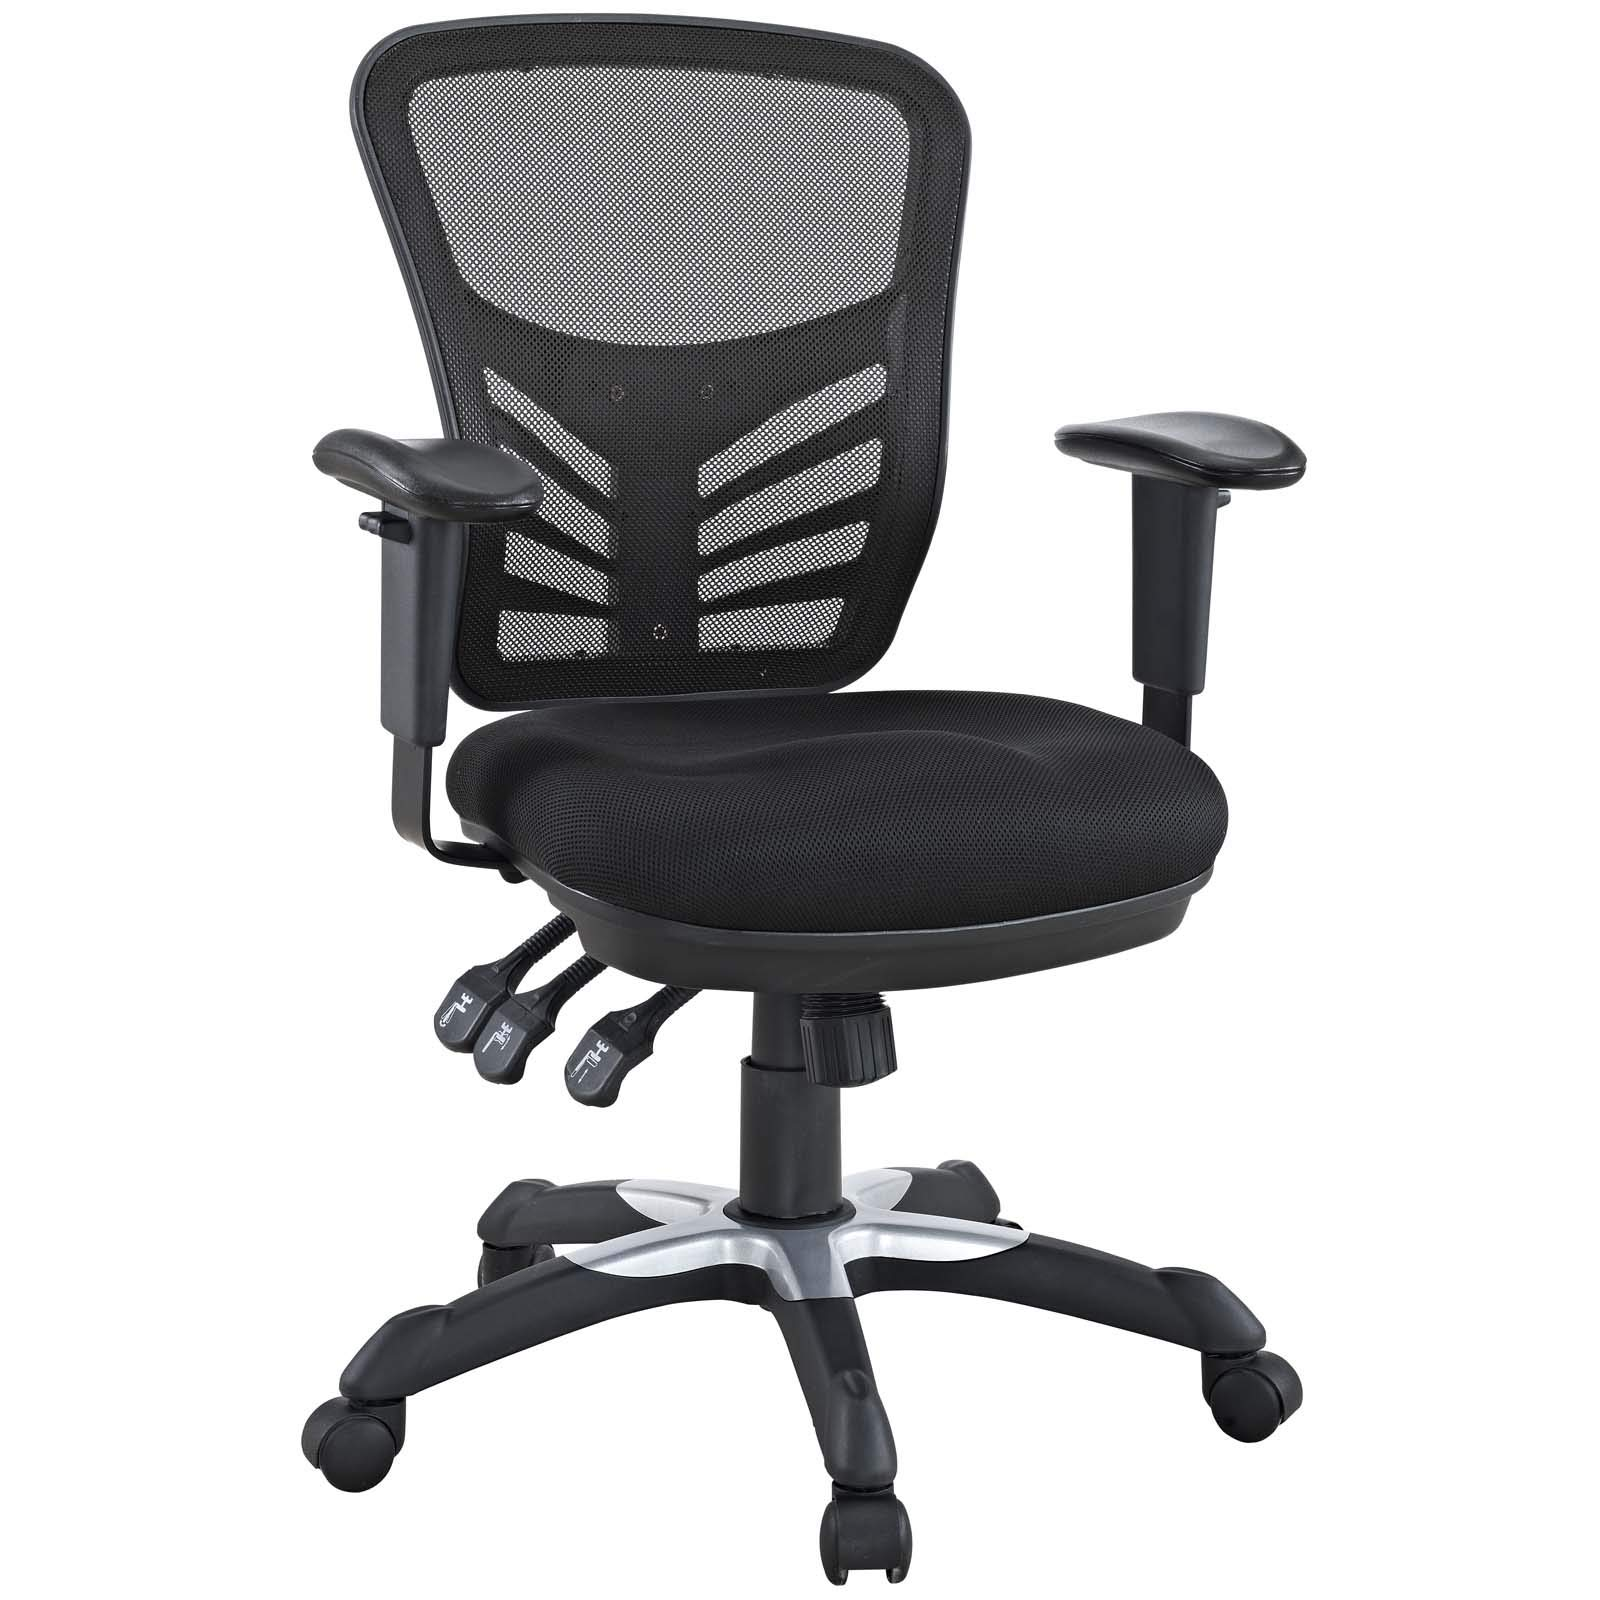 Modway Articulate Ergonomic Mesh Office Chair in Black by Modway